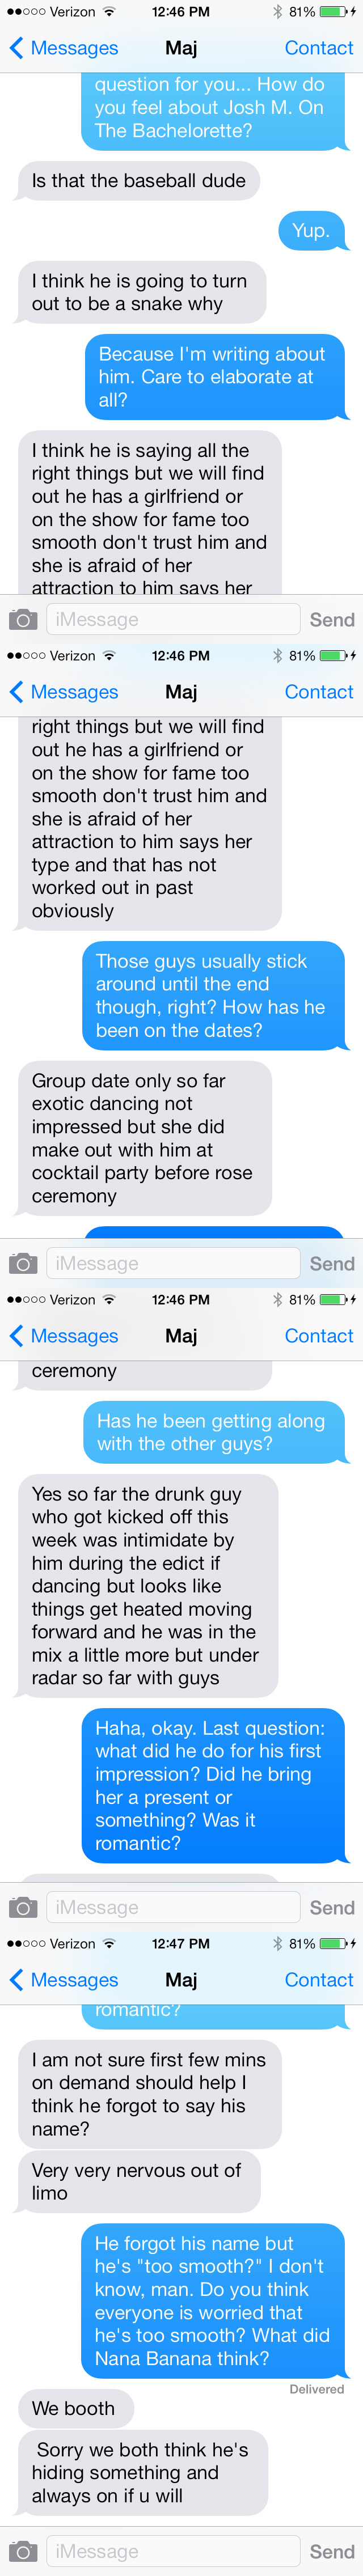 Bachelorette Text